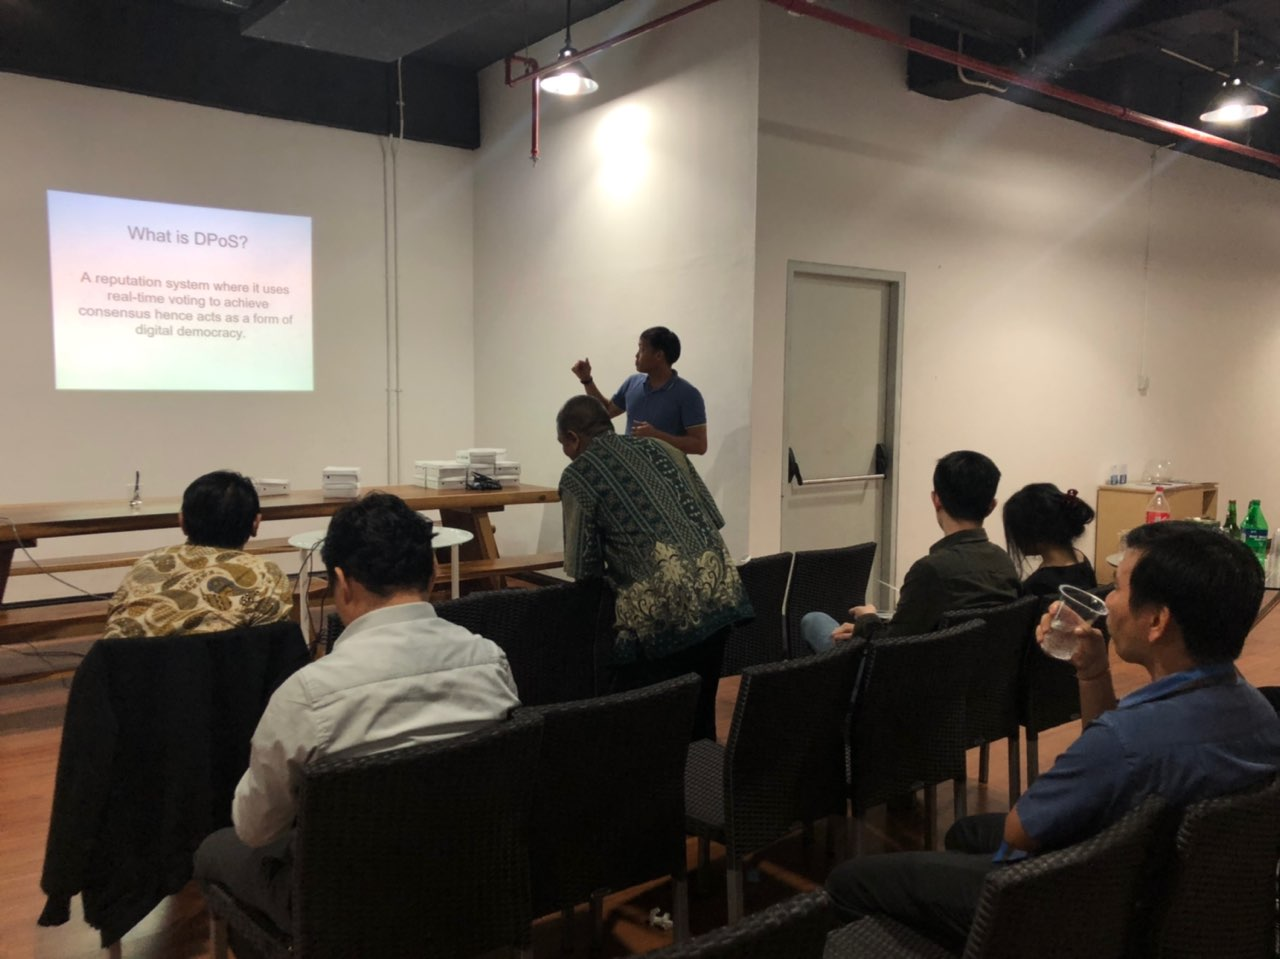 Hafis - DPoS as speaker at TGIF event 7 December 2018